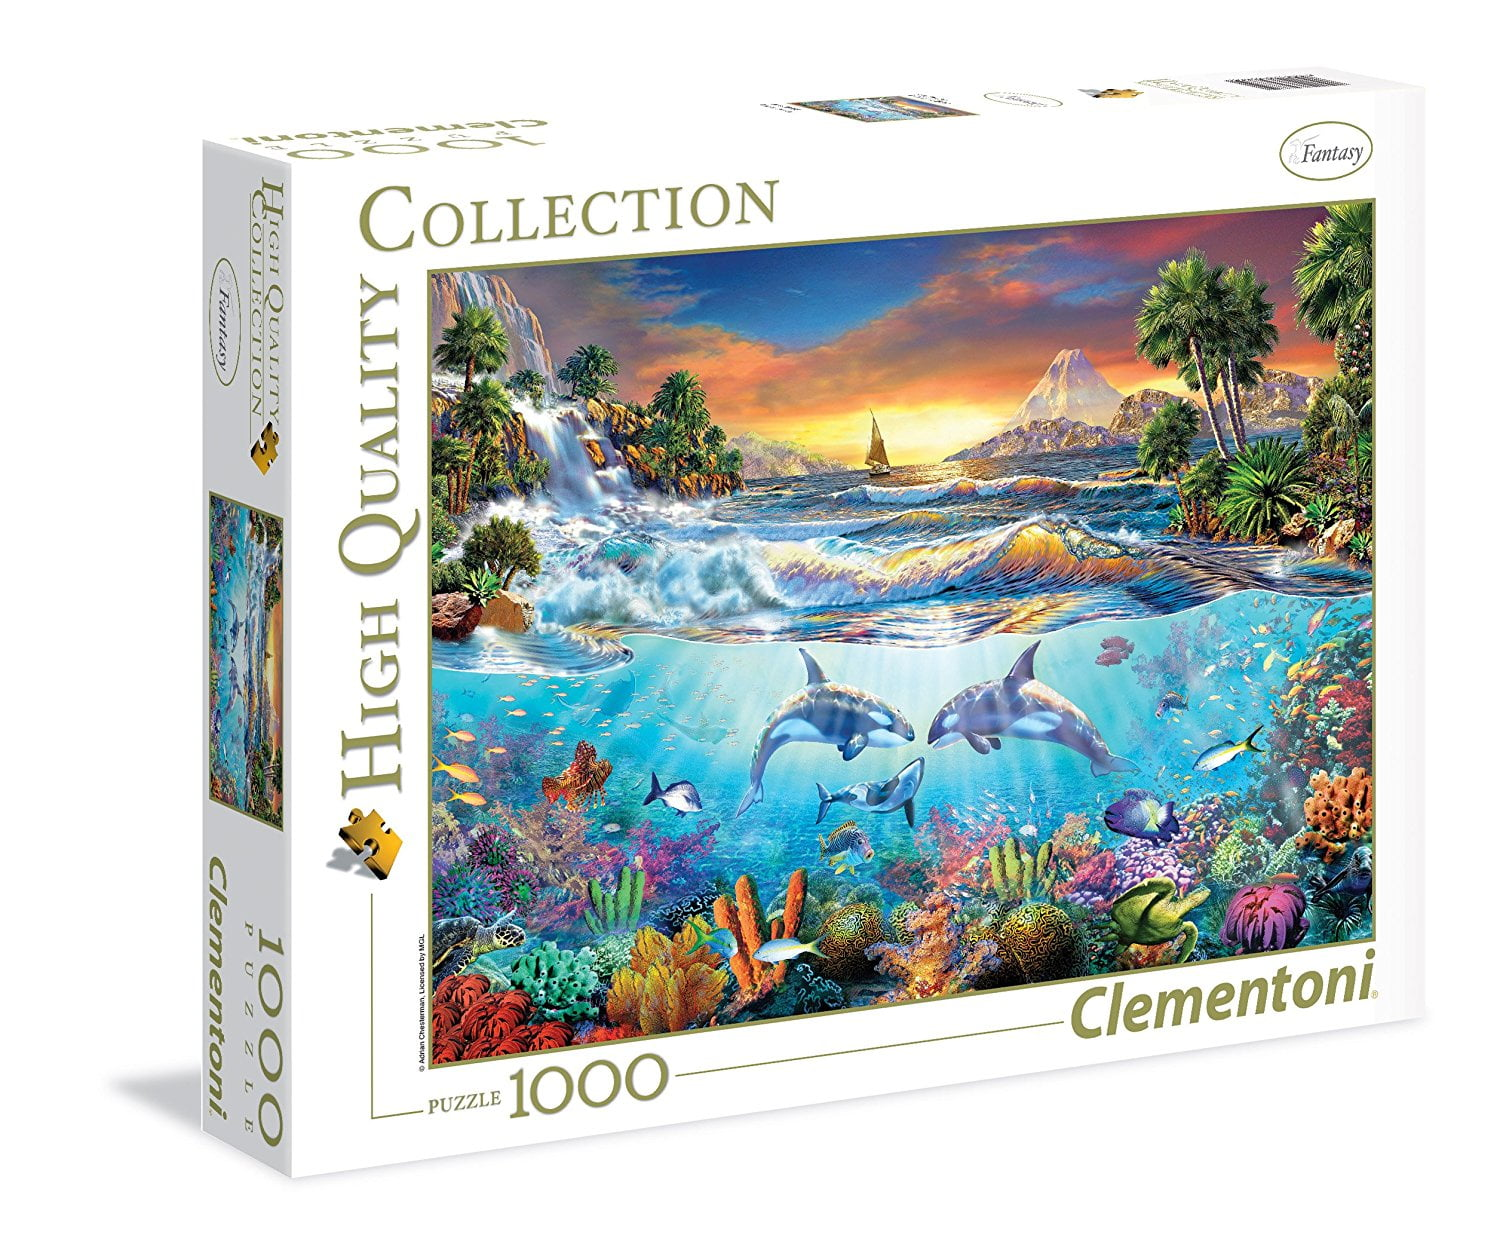 Find great deals on eBay for piece jigsaw puzzles and piece jigsaw puzzles disney. Shop with confidence.